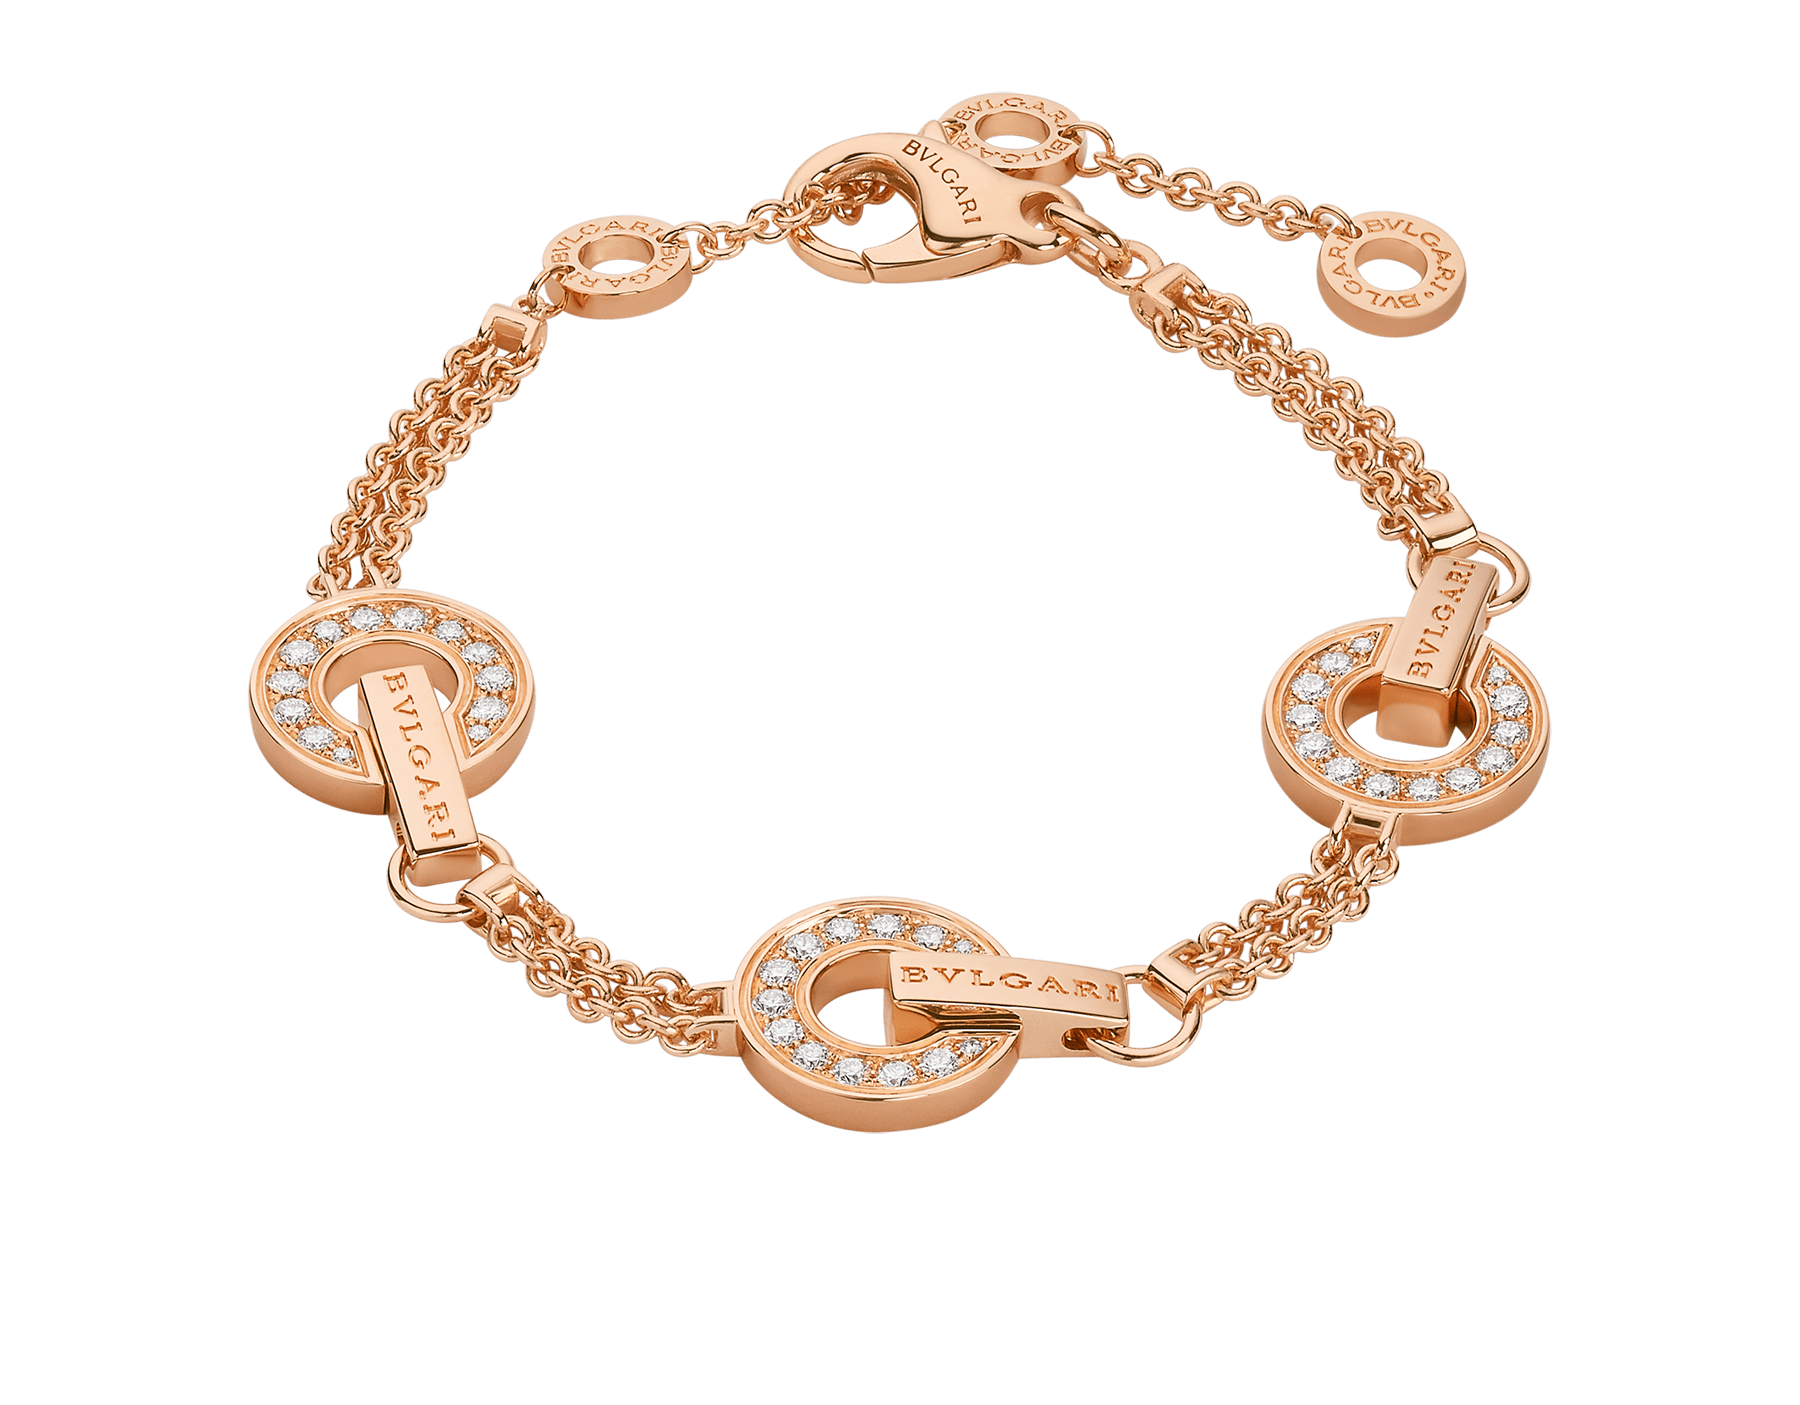 BVLGARI BVLGARI openwork 18 kt rose gold bracelet set with full pavé diamonds on the circular elements BR858775 image 1